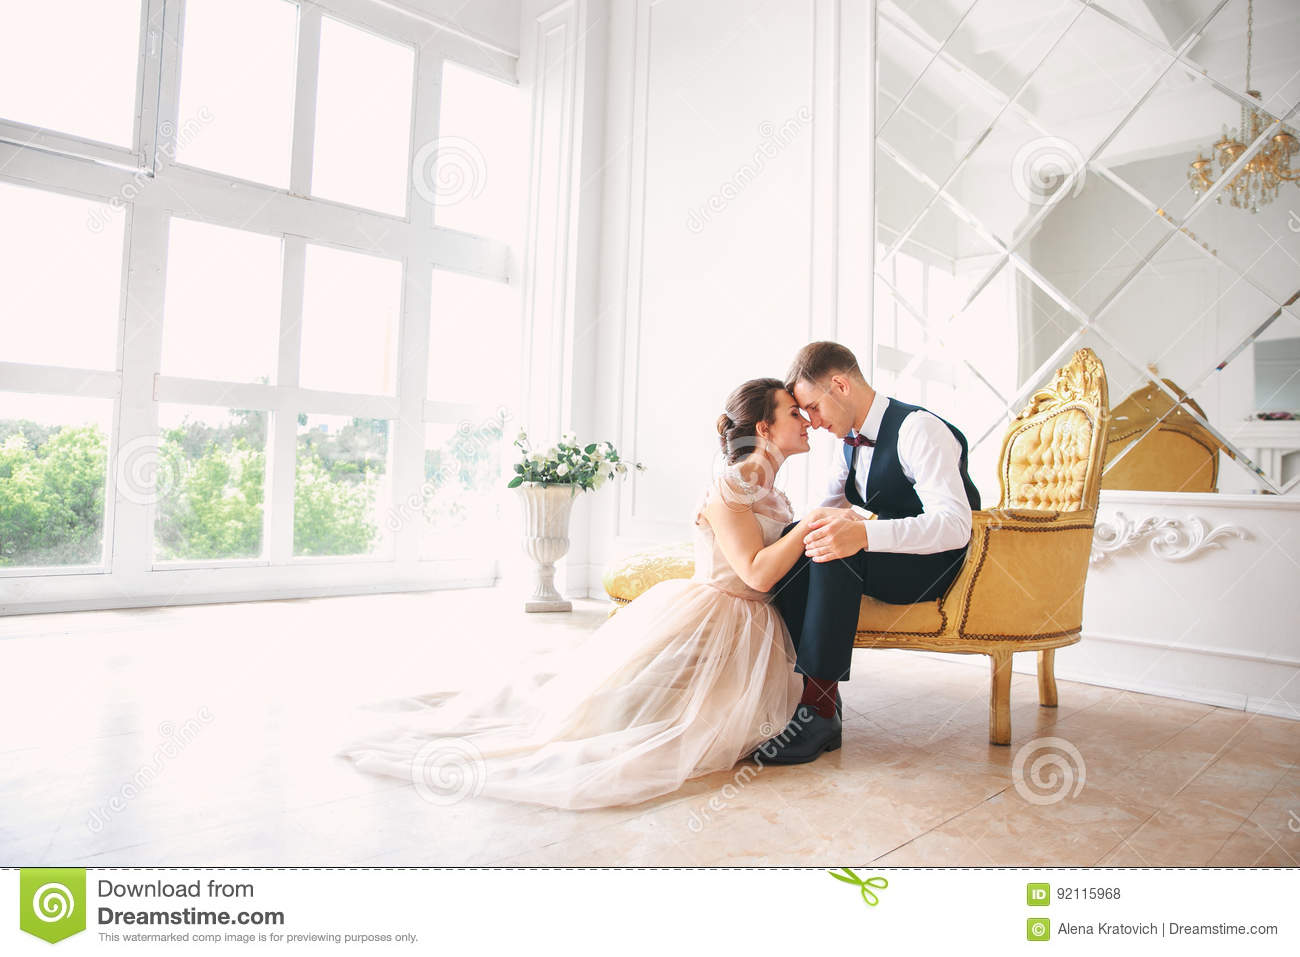 Wedding couple on the studio. Wedding day. Happy young bride and groom on their wedding day. Wedding couple - new family.